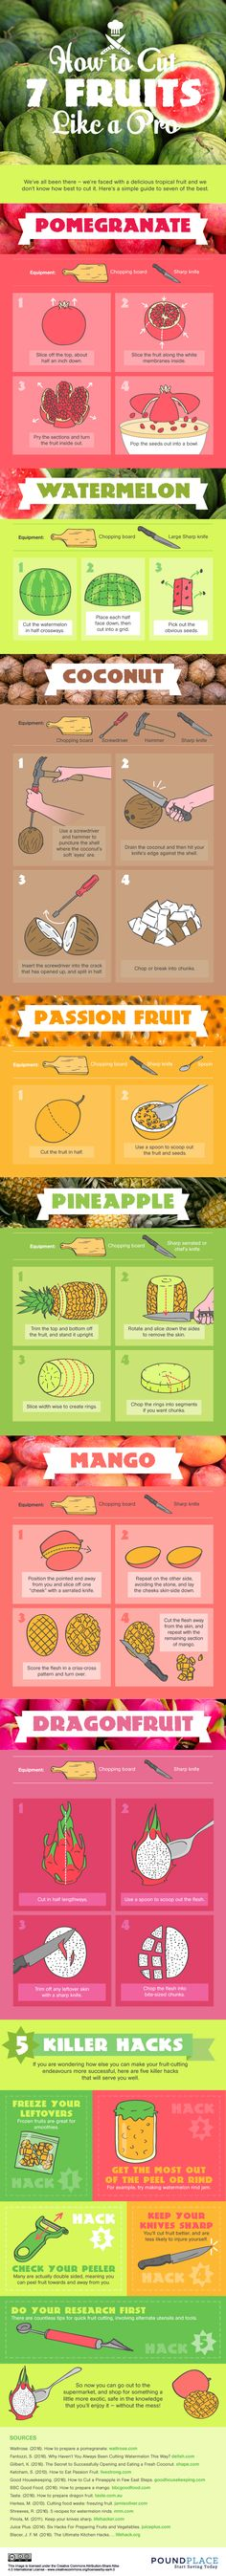 Messing up while cutting fruits? Chances are you haven't learnt it the right way. Here's a step-by-step guide to cut fruits like a pro.